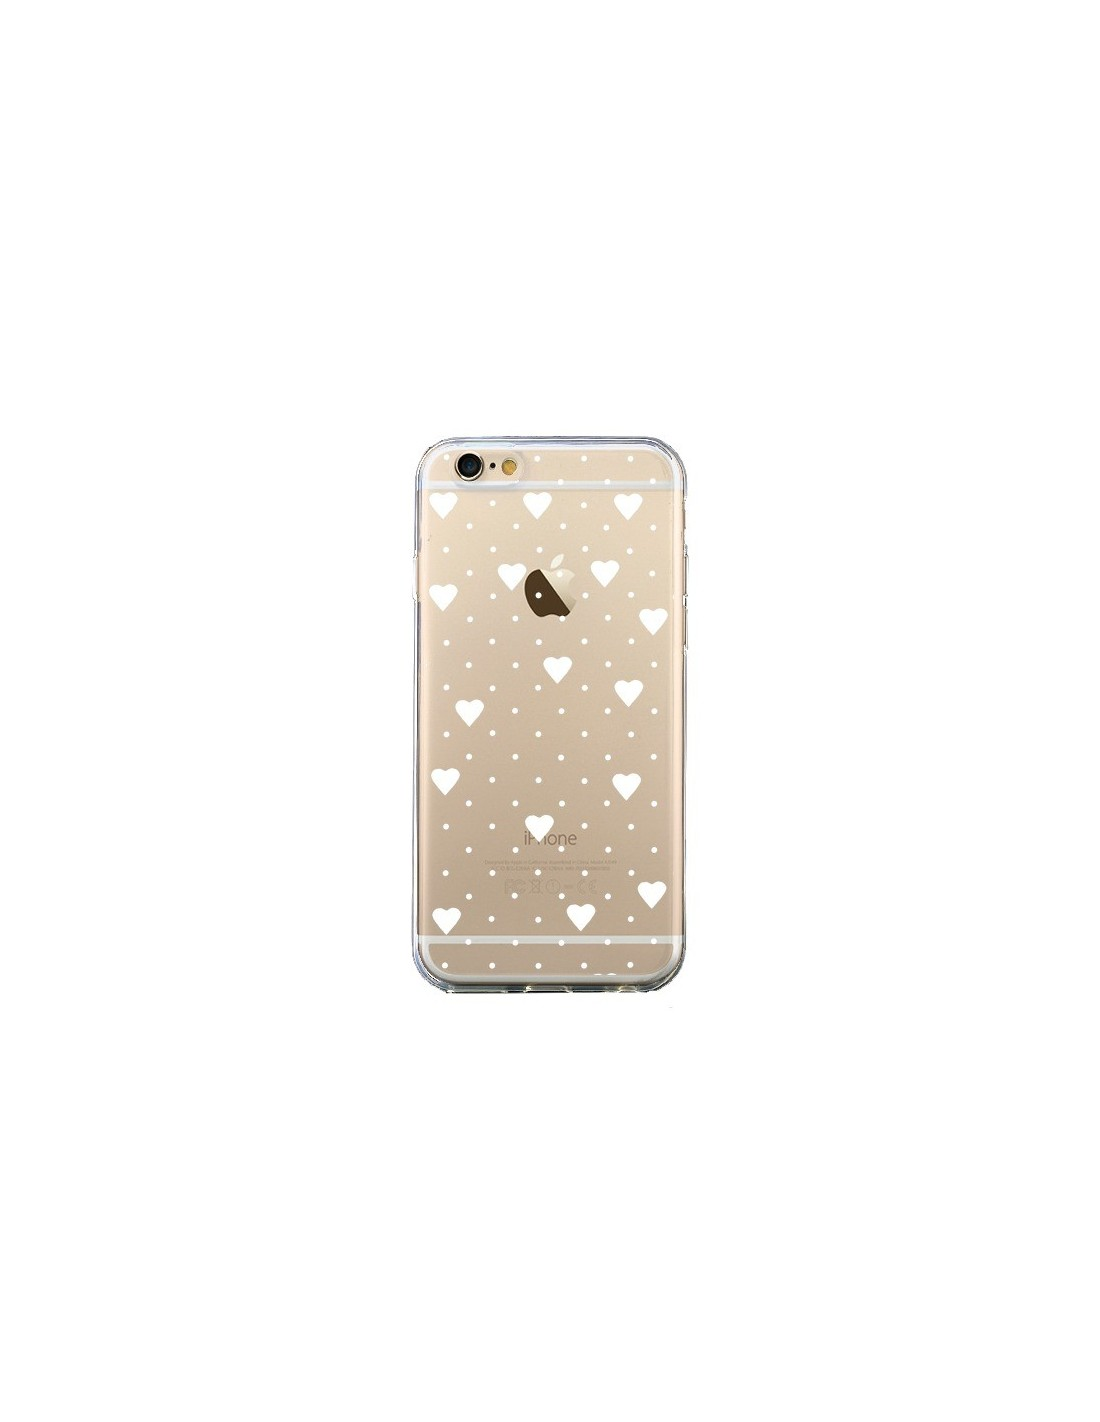 coque point coeur blanc pin point heart transparente pour iphone 6 et 6s project m. Black Bedroom Furniture Sets. Home Design Ideas